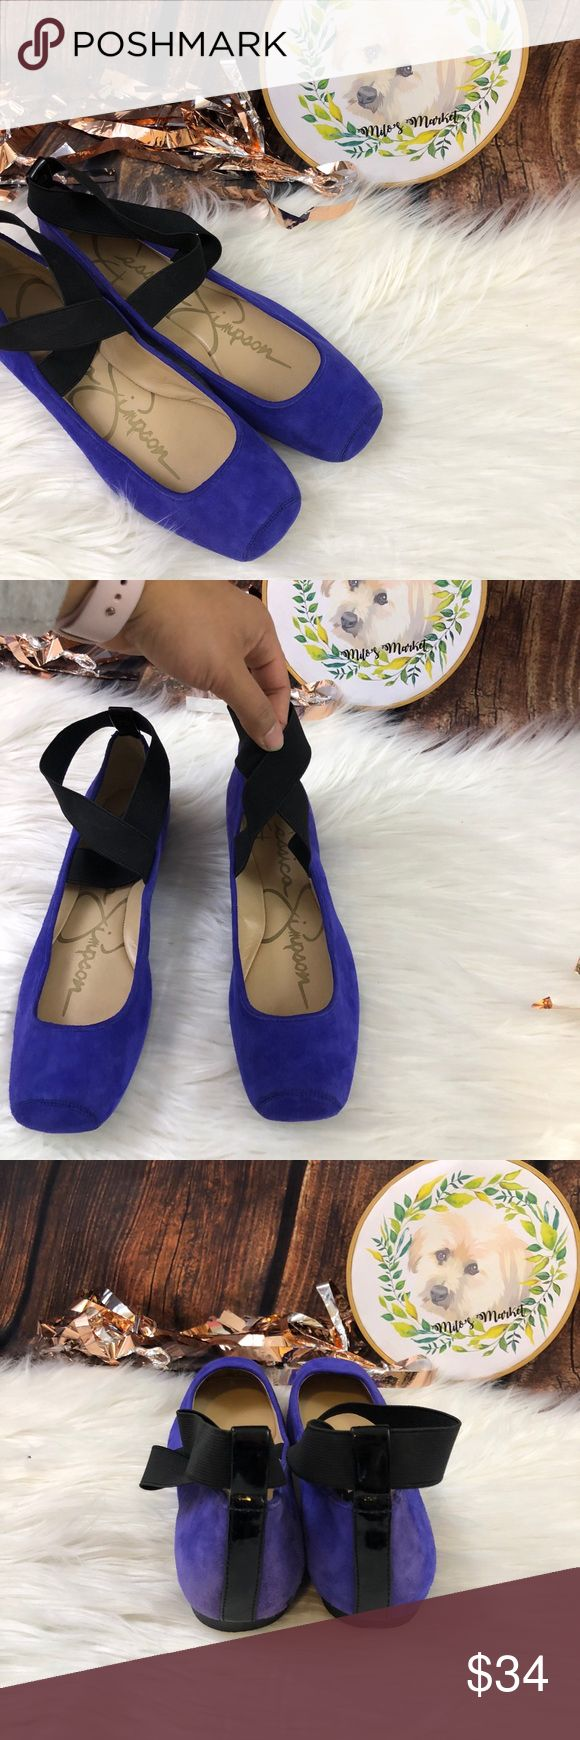 Jessica Simpson | 'Mandalaye' violet suede flat Jessica Simpson | 'Mandalaye' violet elastic suede ballet flat Square toe Size 8  Condition: New without tag  Feel free to make an offer, or bundle your likes and I'll send you an offer with an exclusive discount!! Jessica Simpson Shoes Flats & Loafers